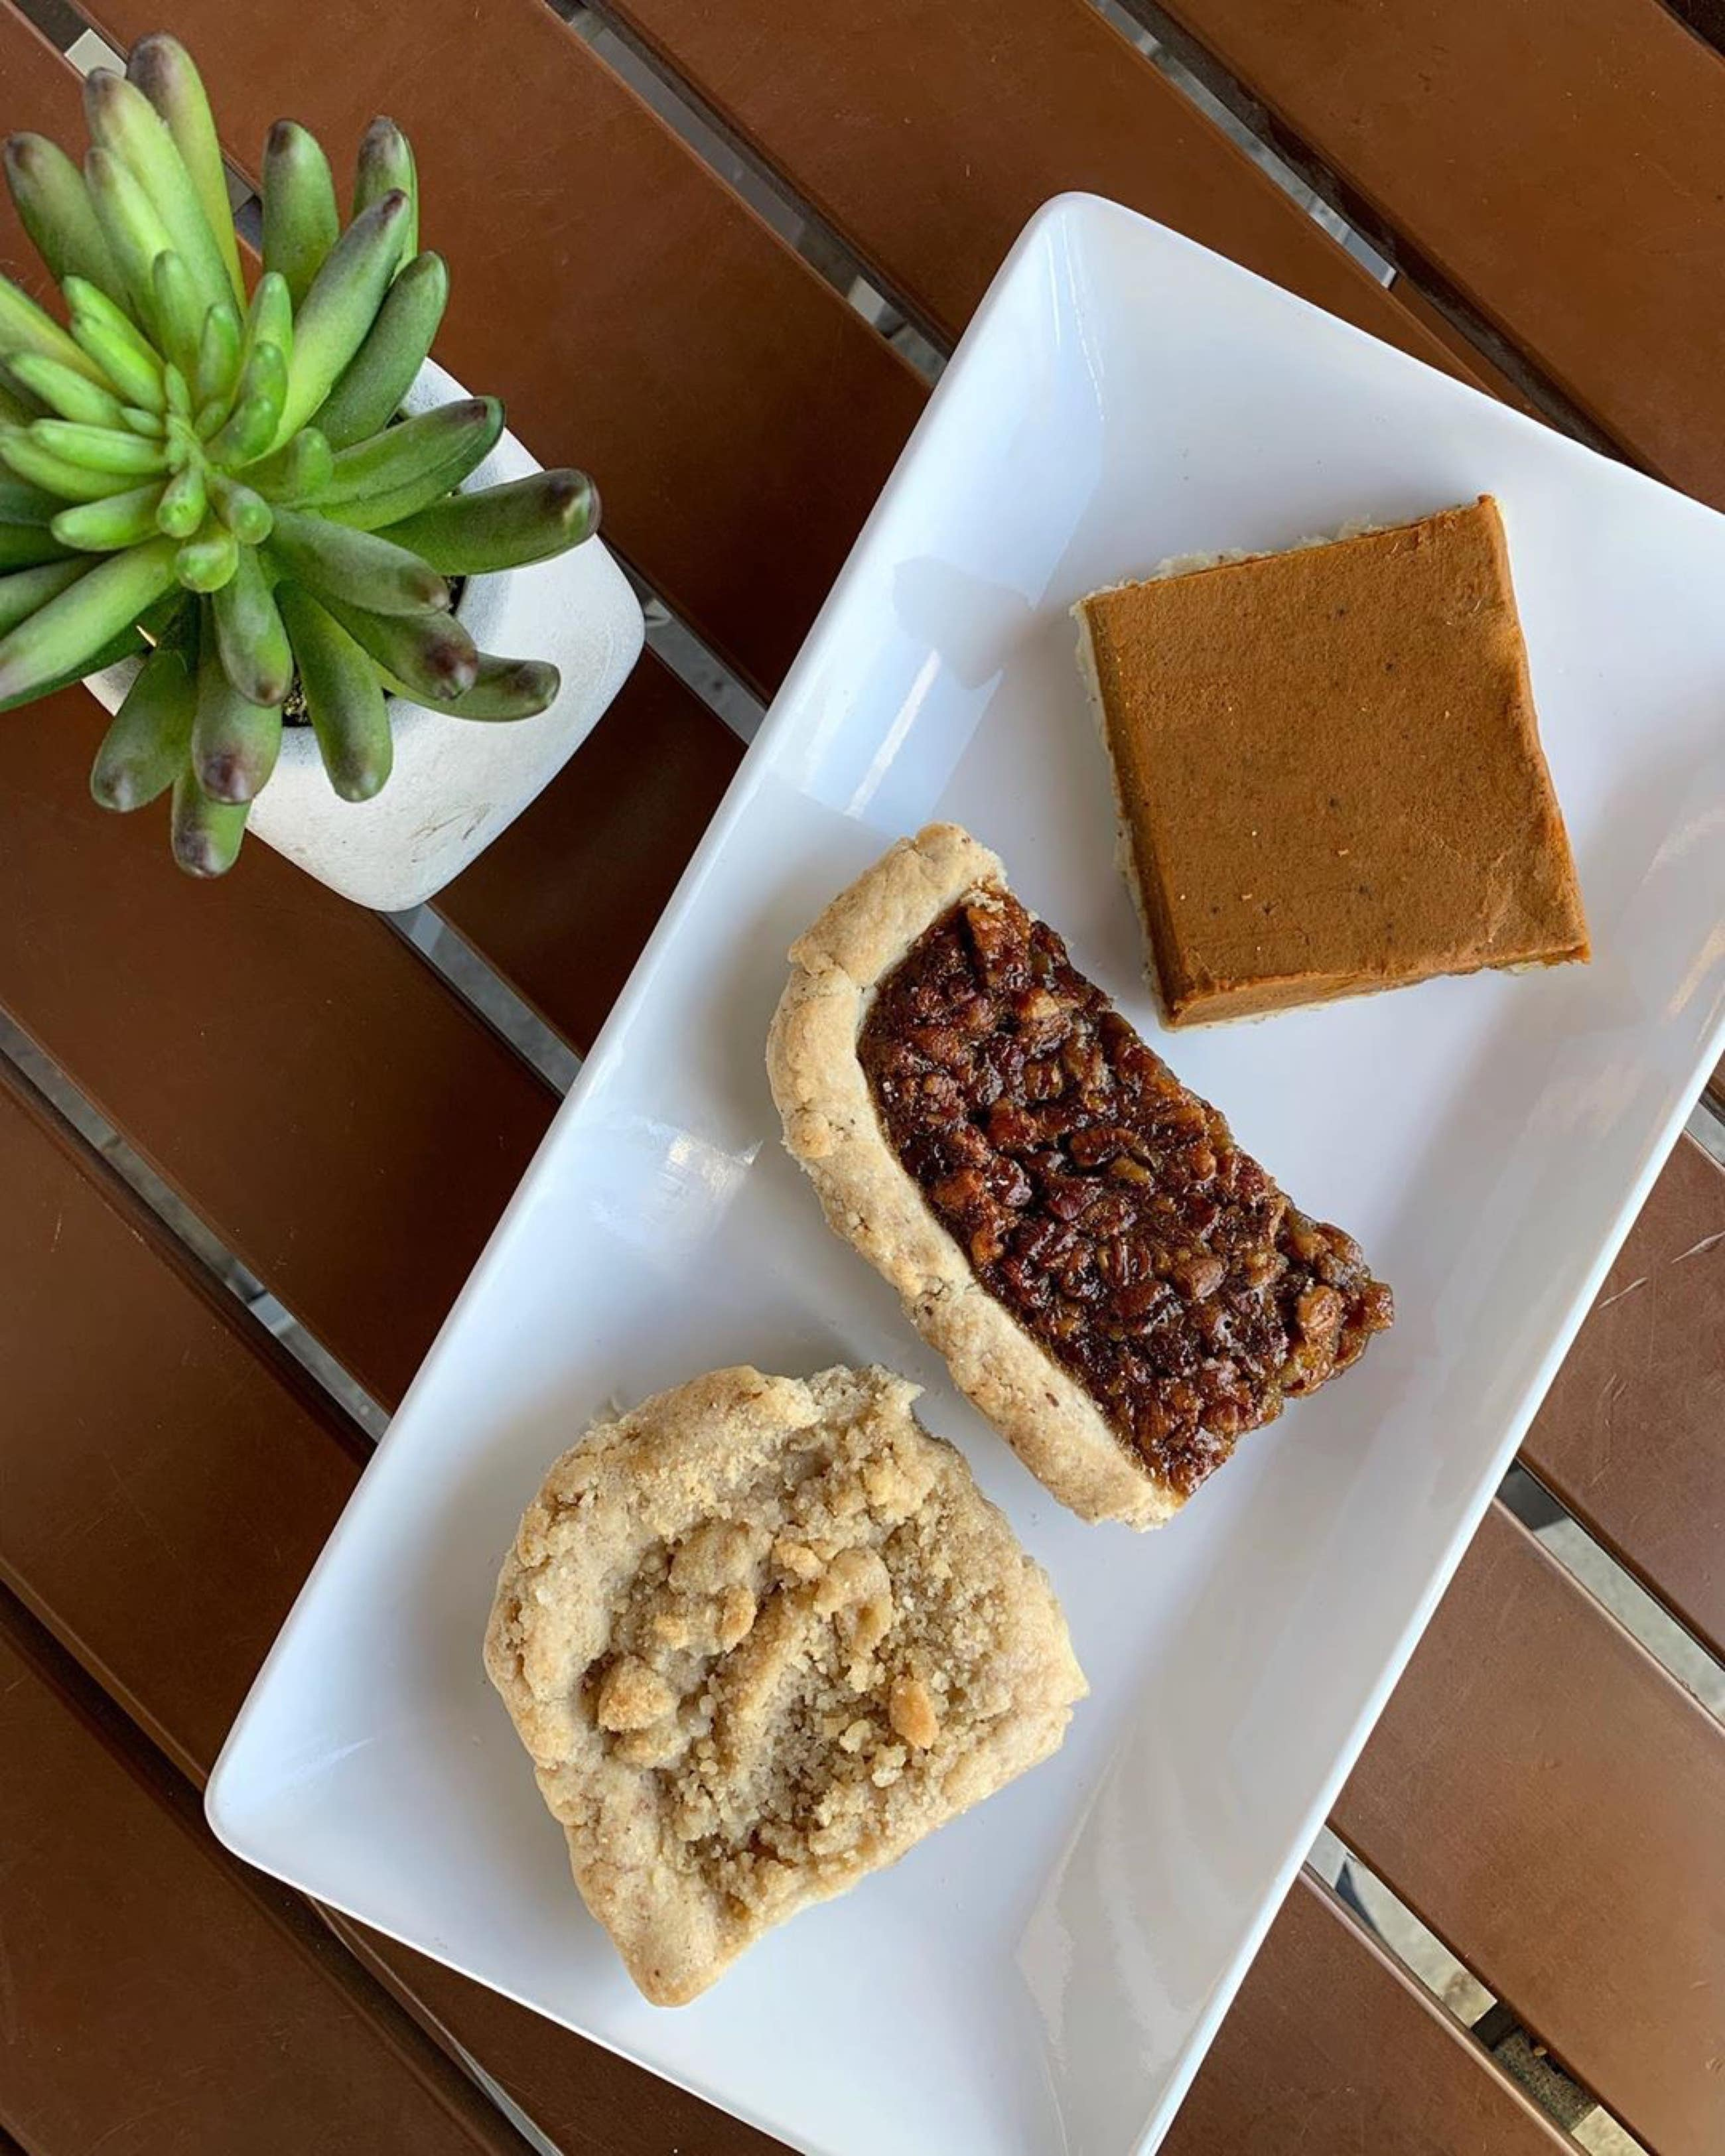 Pie bars at Rising Hearts Bakery in Culver City